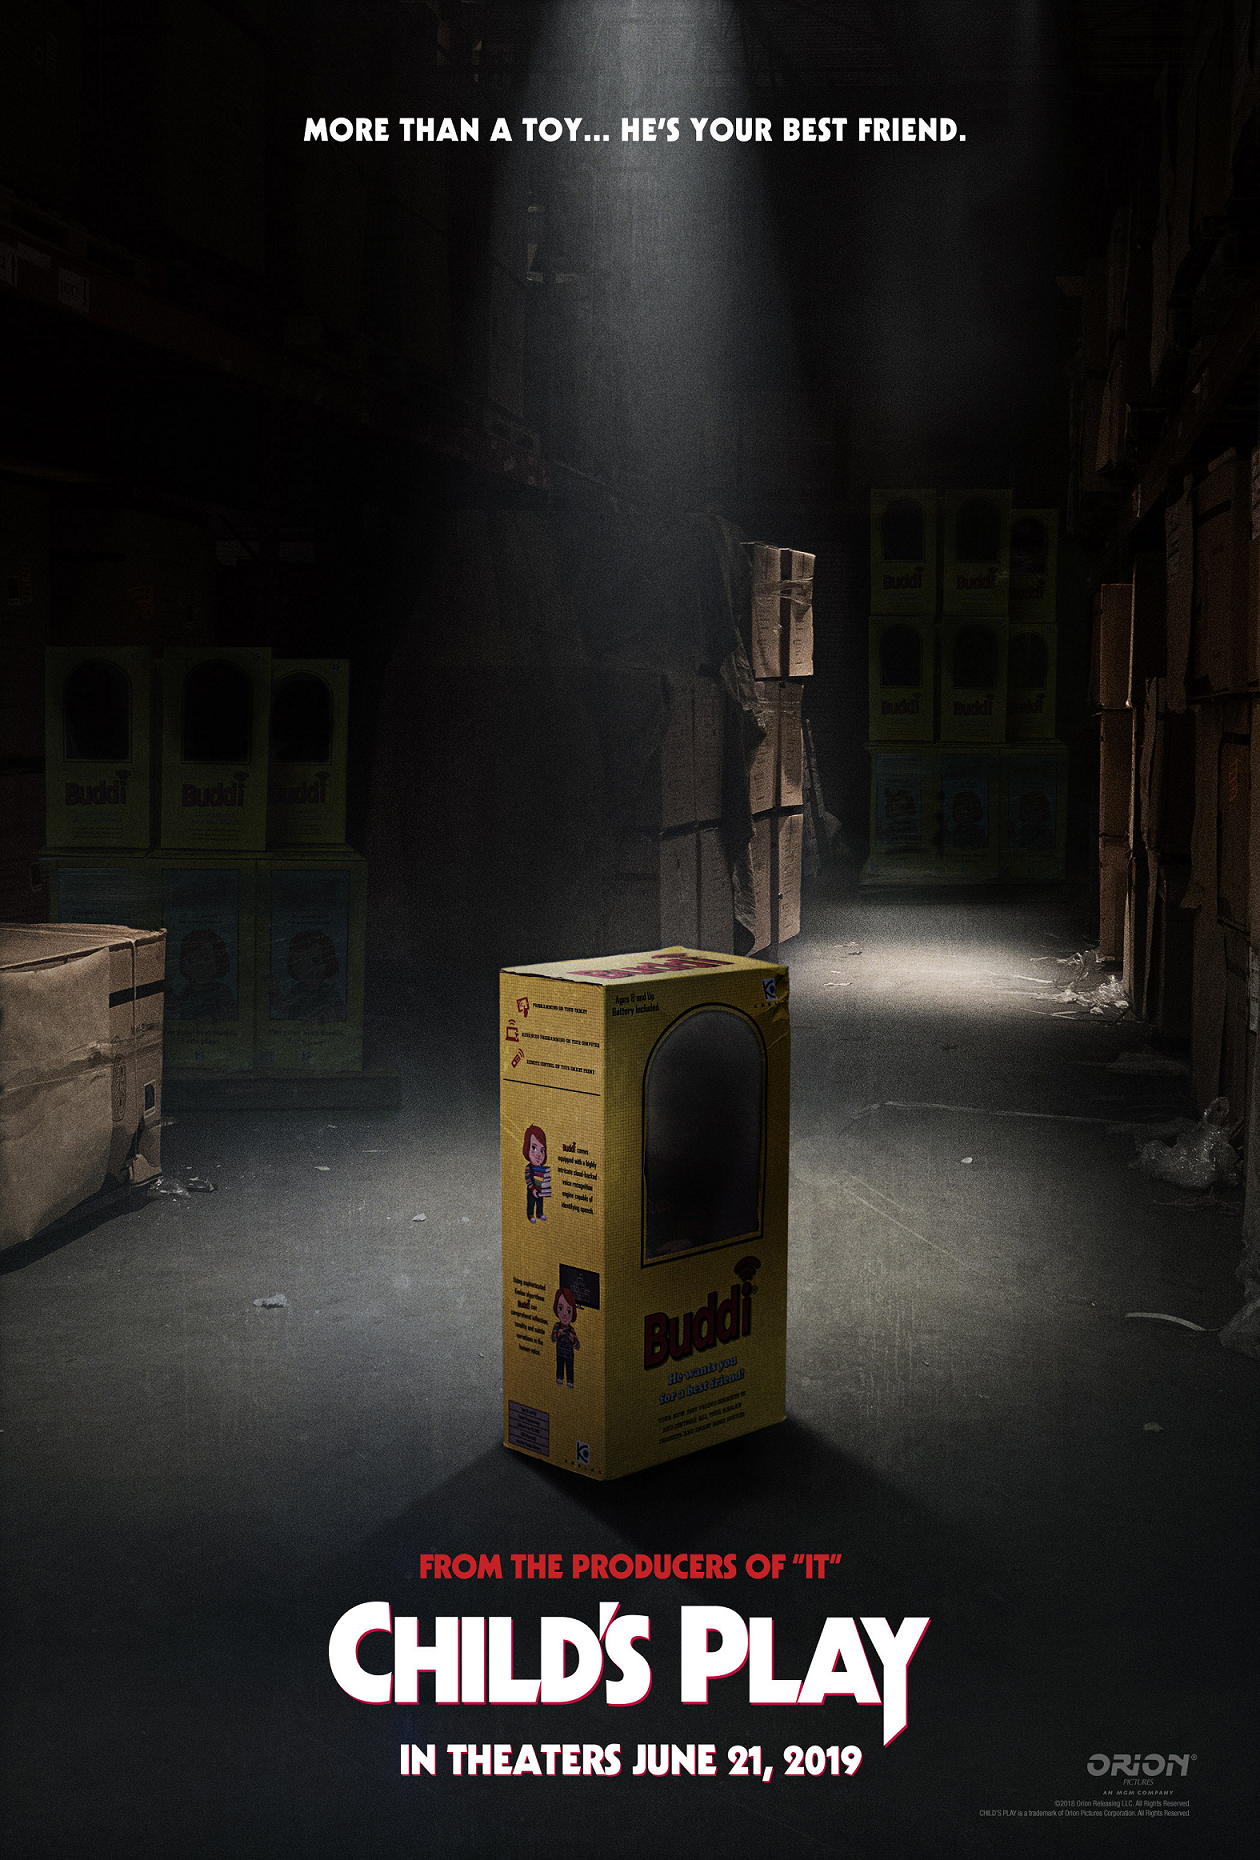 childs-play-teaser-poster-muneco-diabolico-1542094841.png